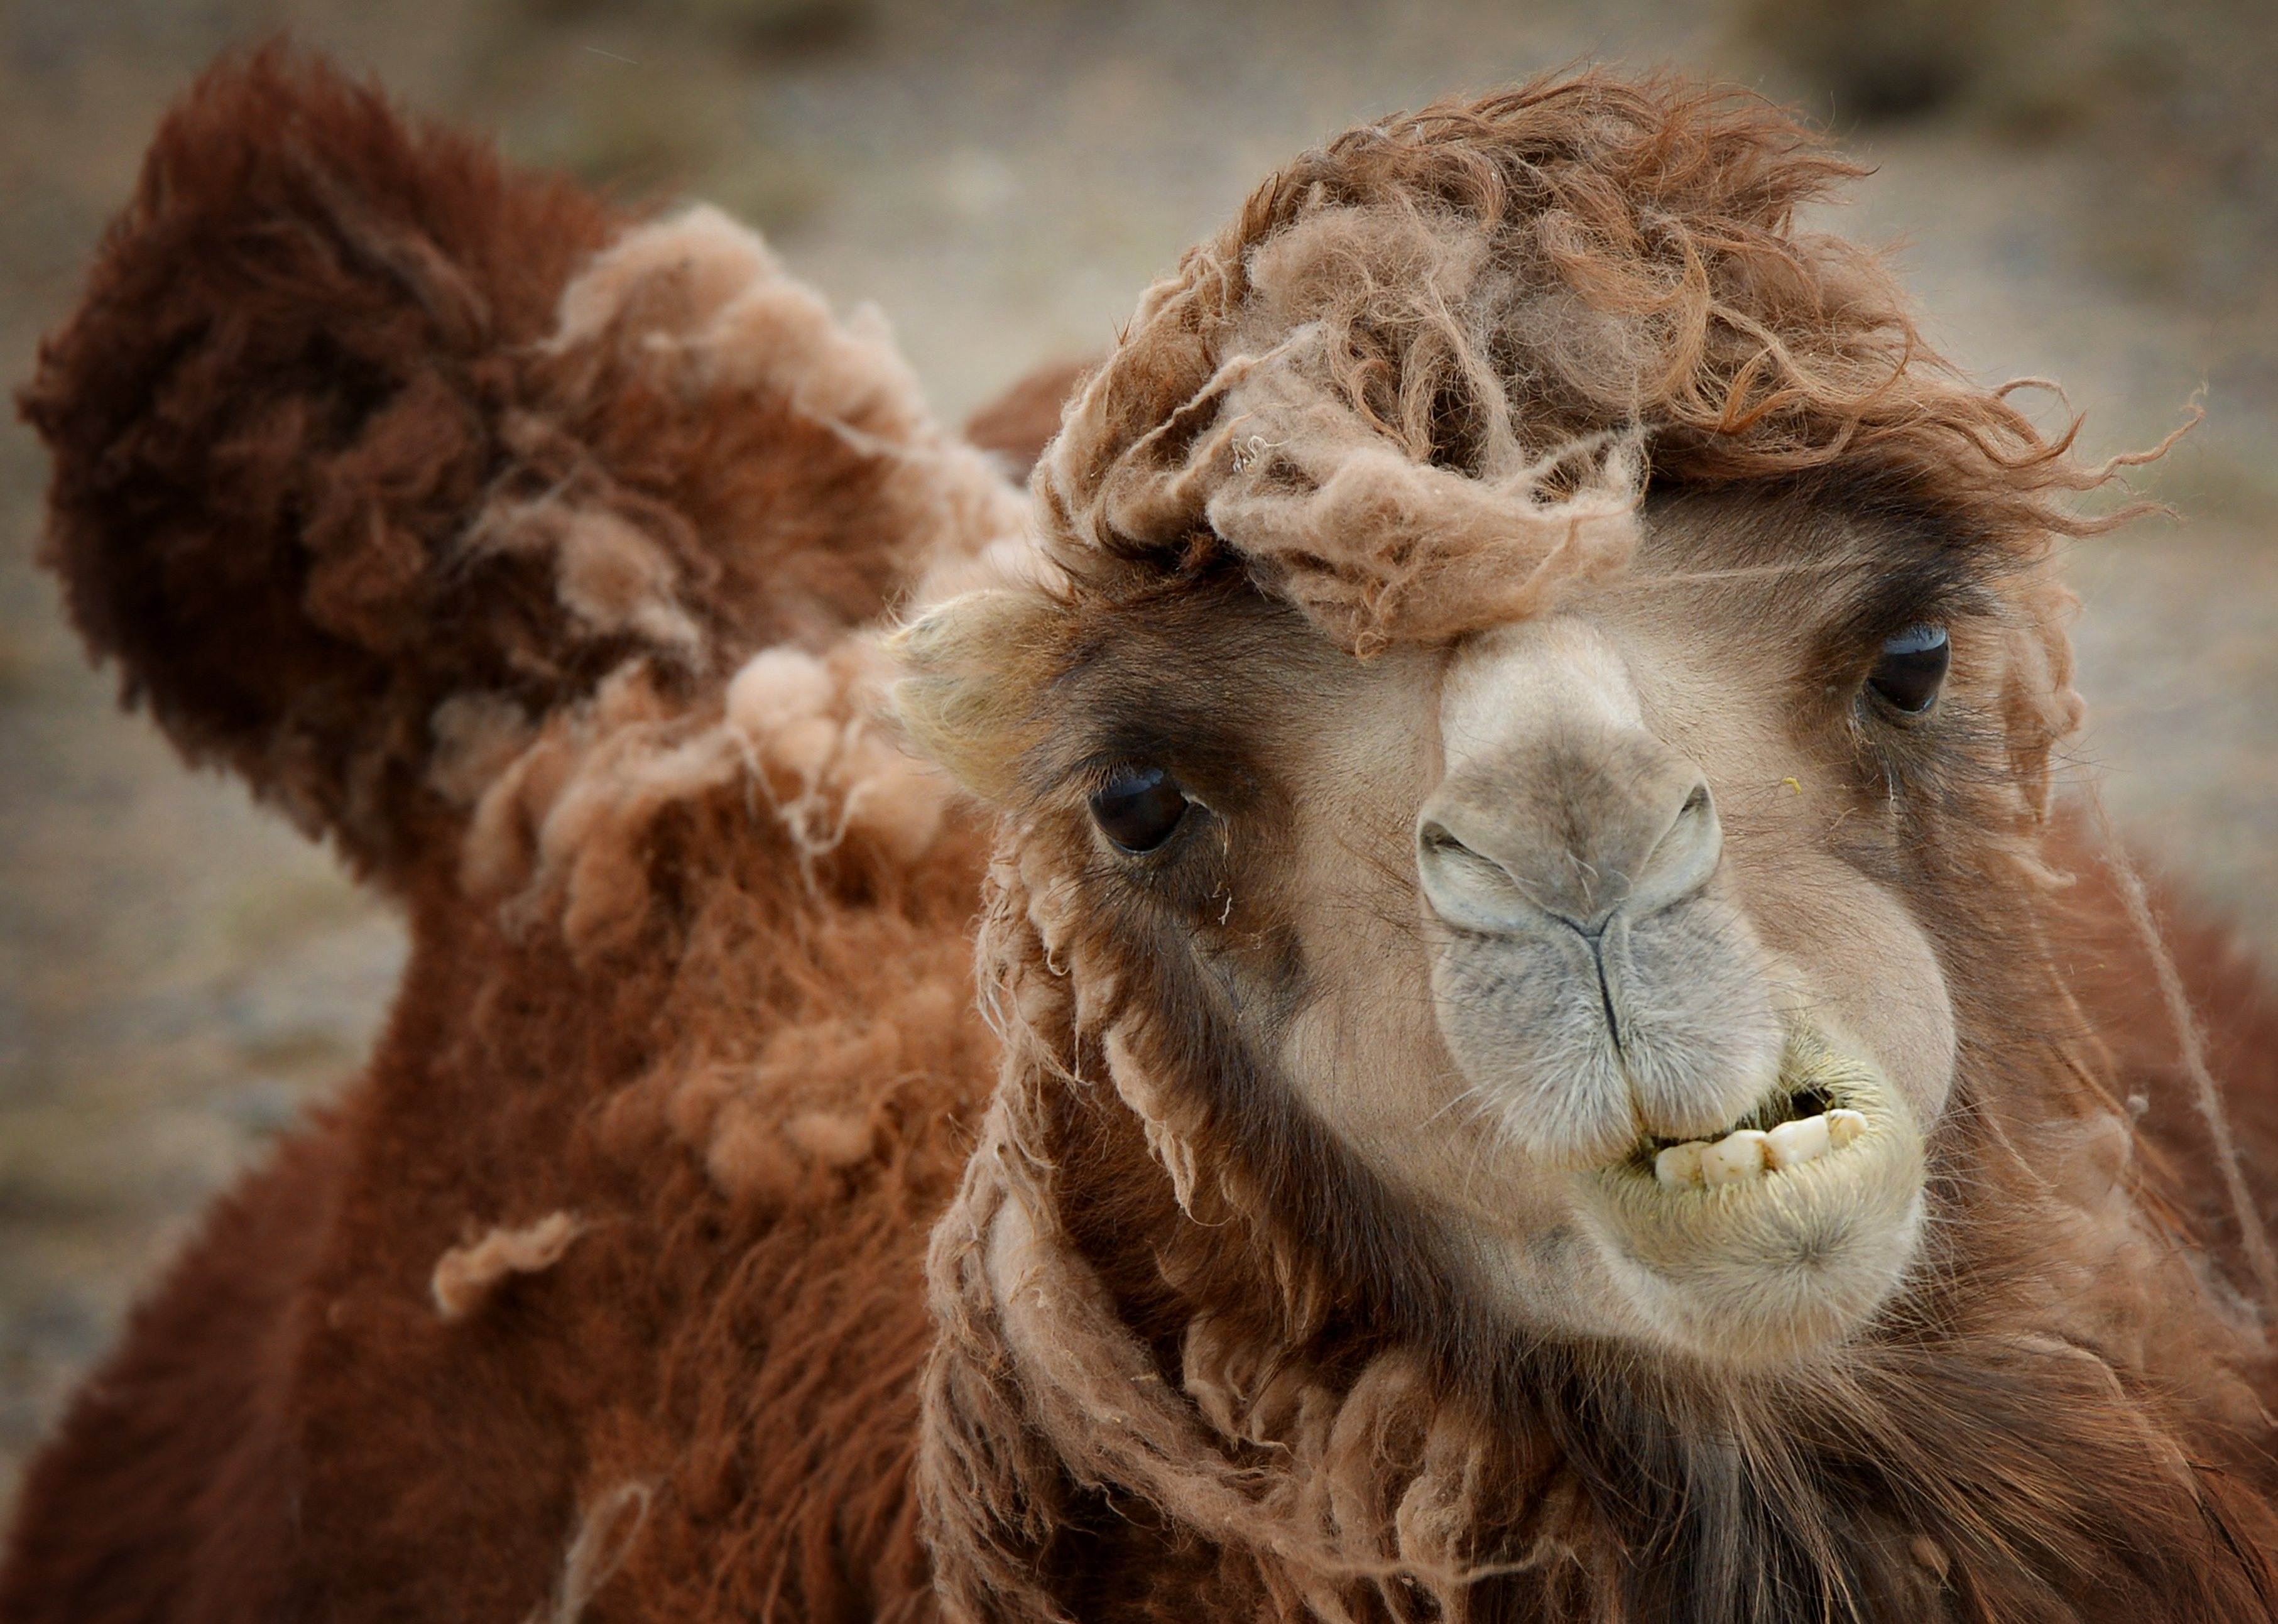 Mongolia to hold camel festival to promote tourism